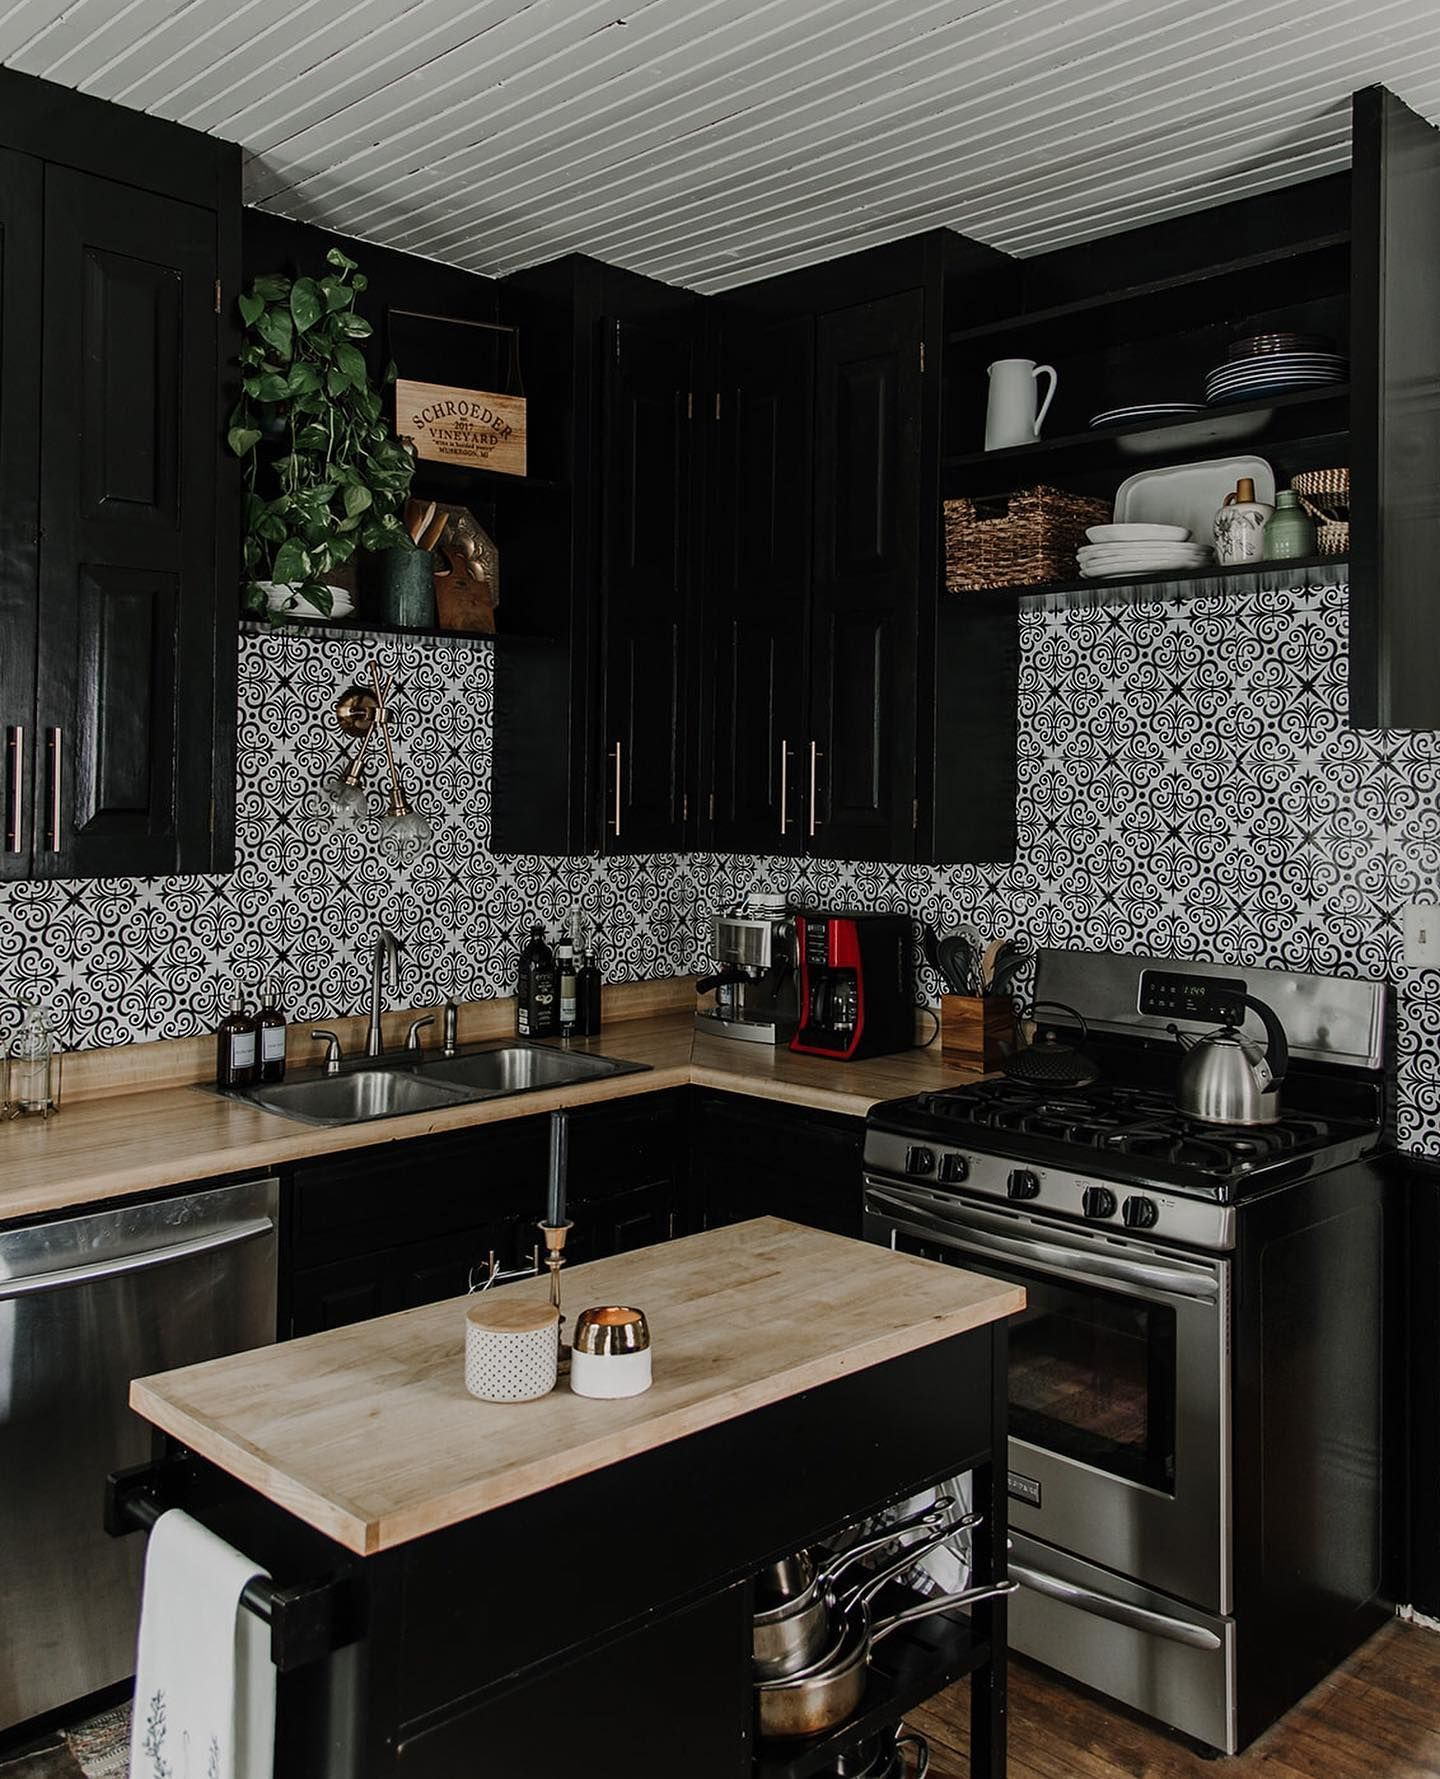 thoughtfullythrifted on instagram in 2020 black kitchen on 91 Comfortable Kitchen Design Tips 2020 id=37792